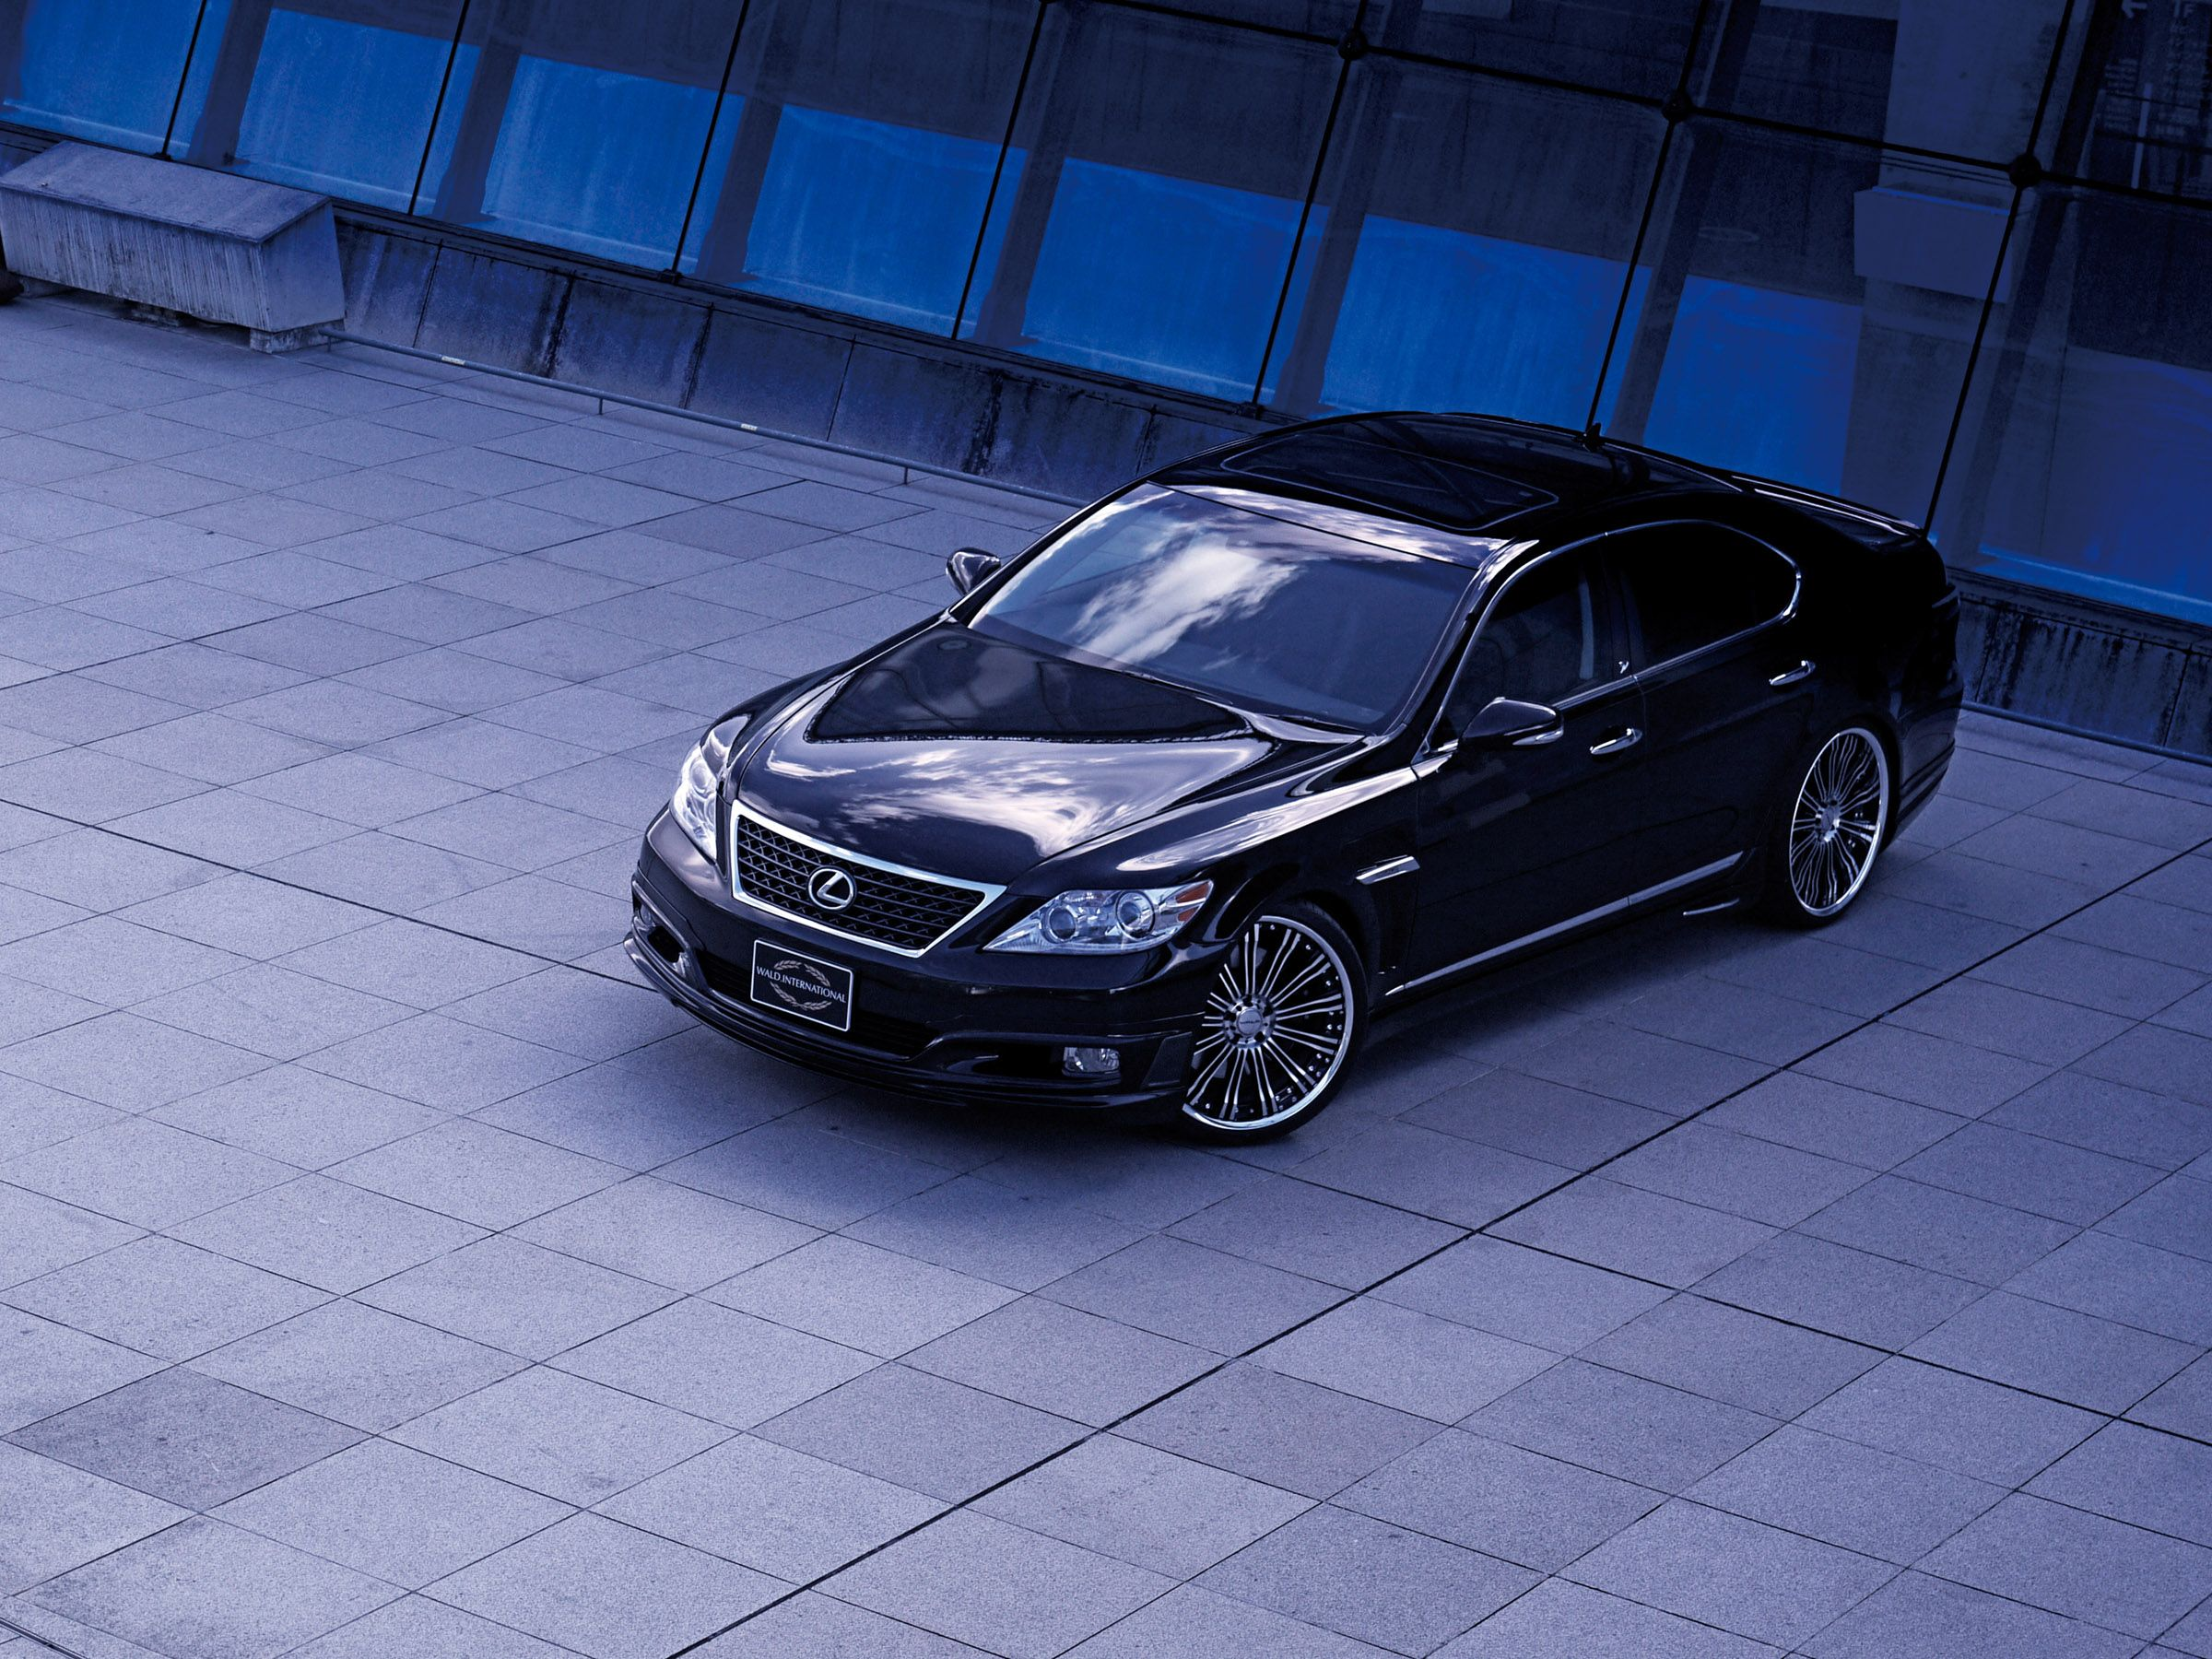 LS460 see more cool pics extreme modified extreme